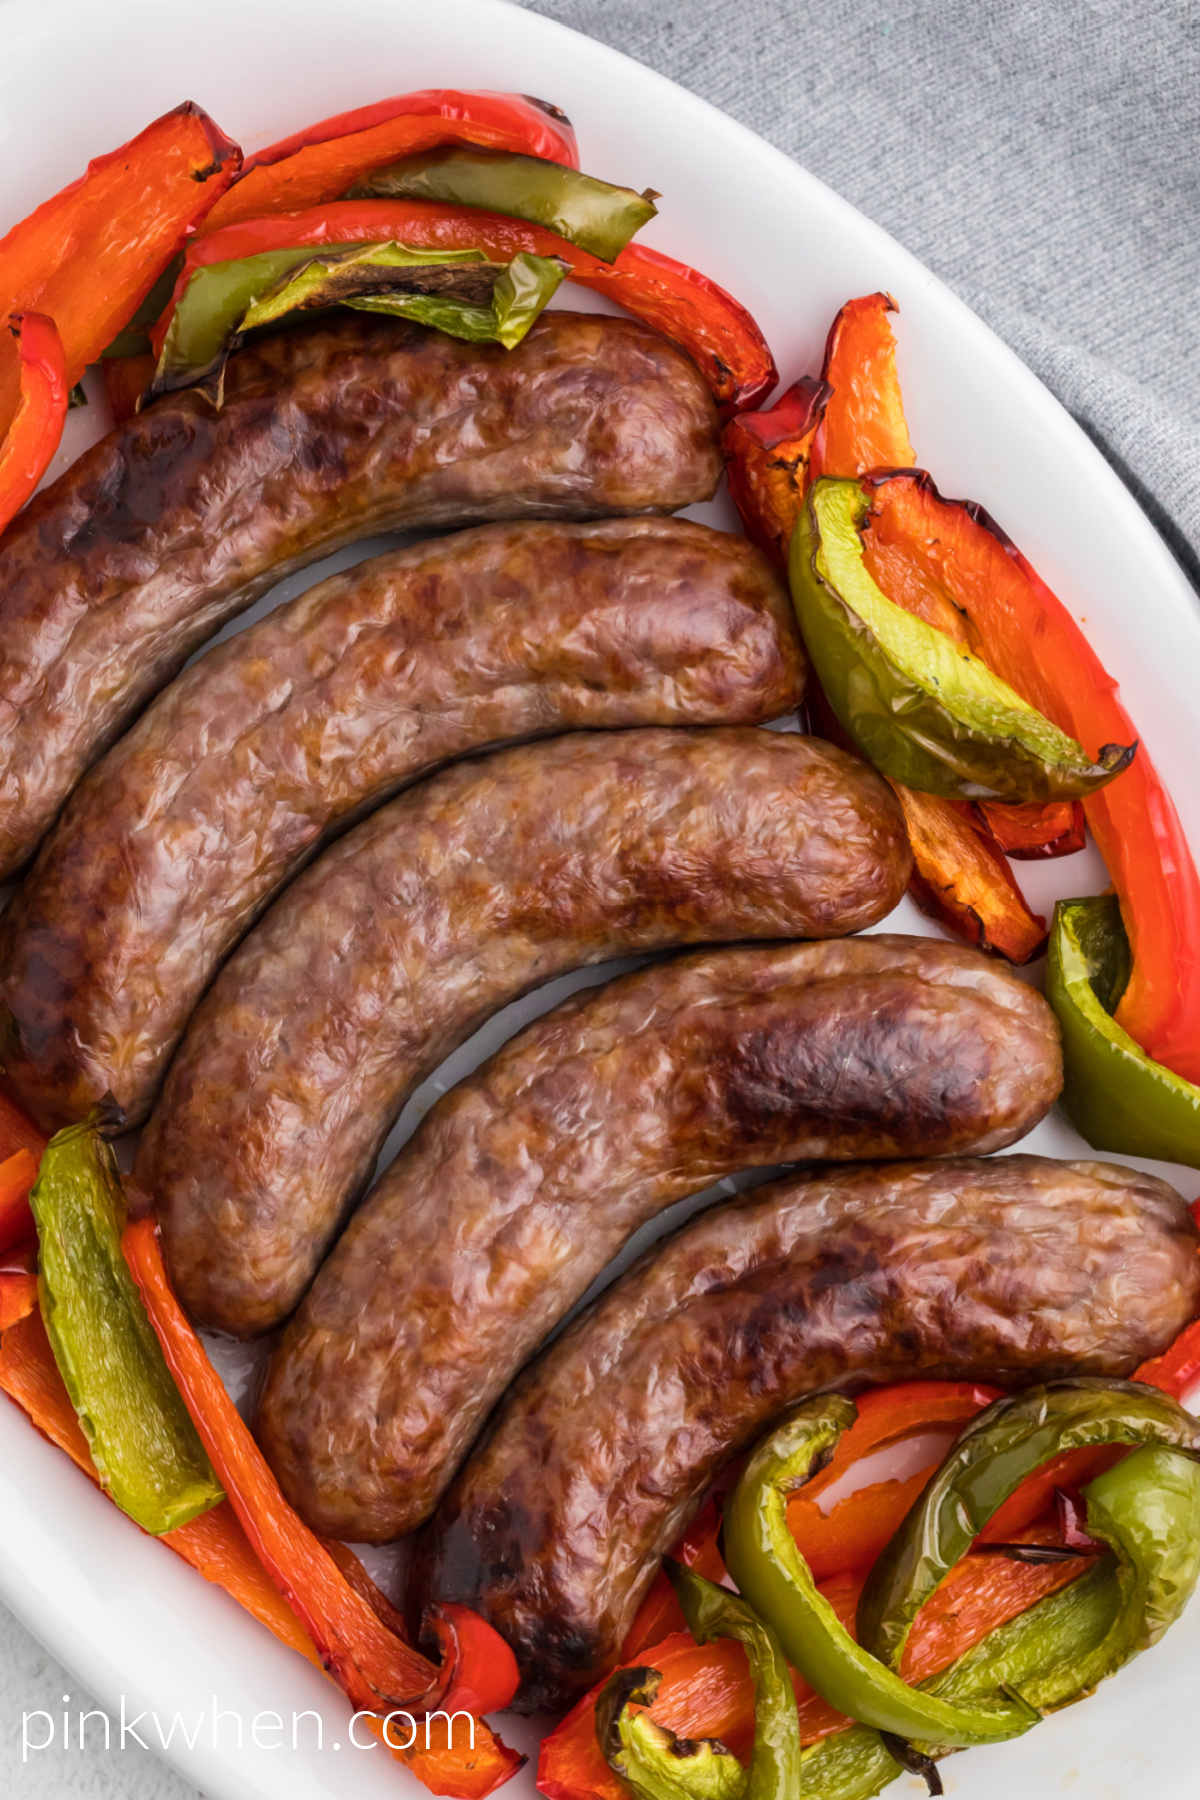 Brats made in the air fryer with bell peppers - served on a white serving dish.